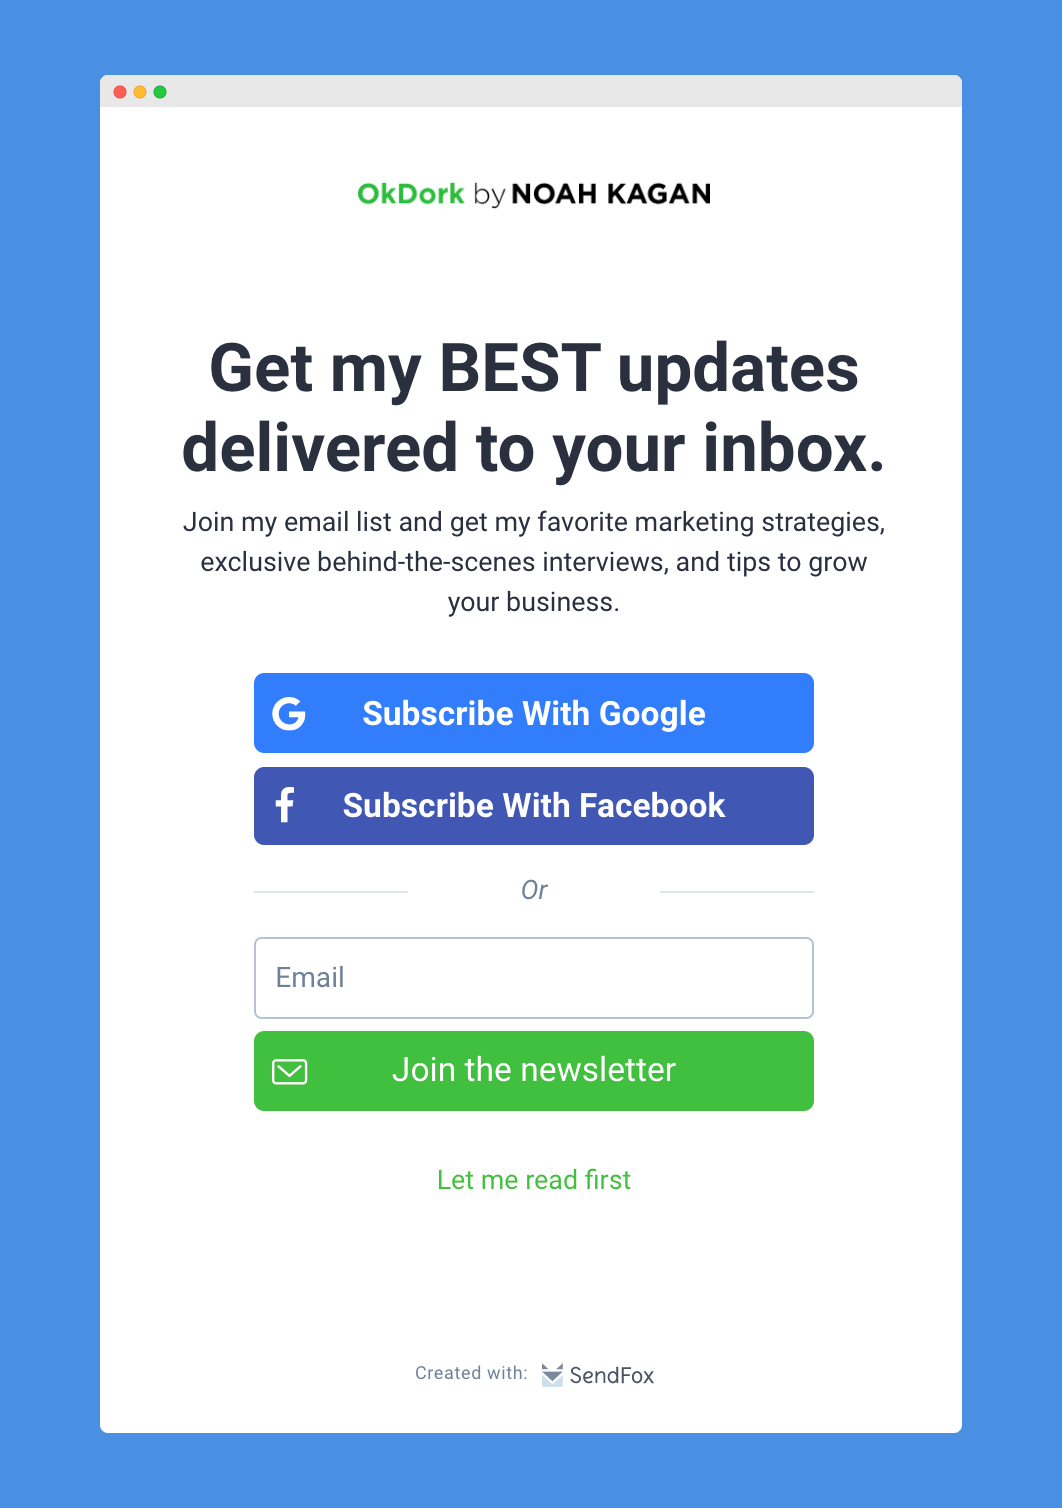 The new subscribe with Google and Facebook buttons